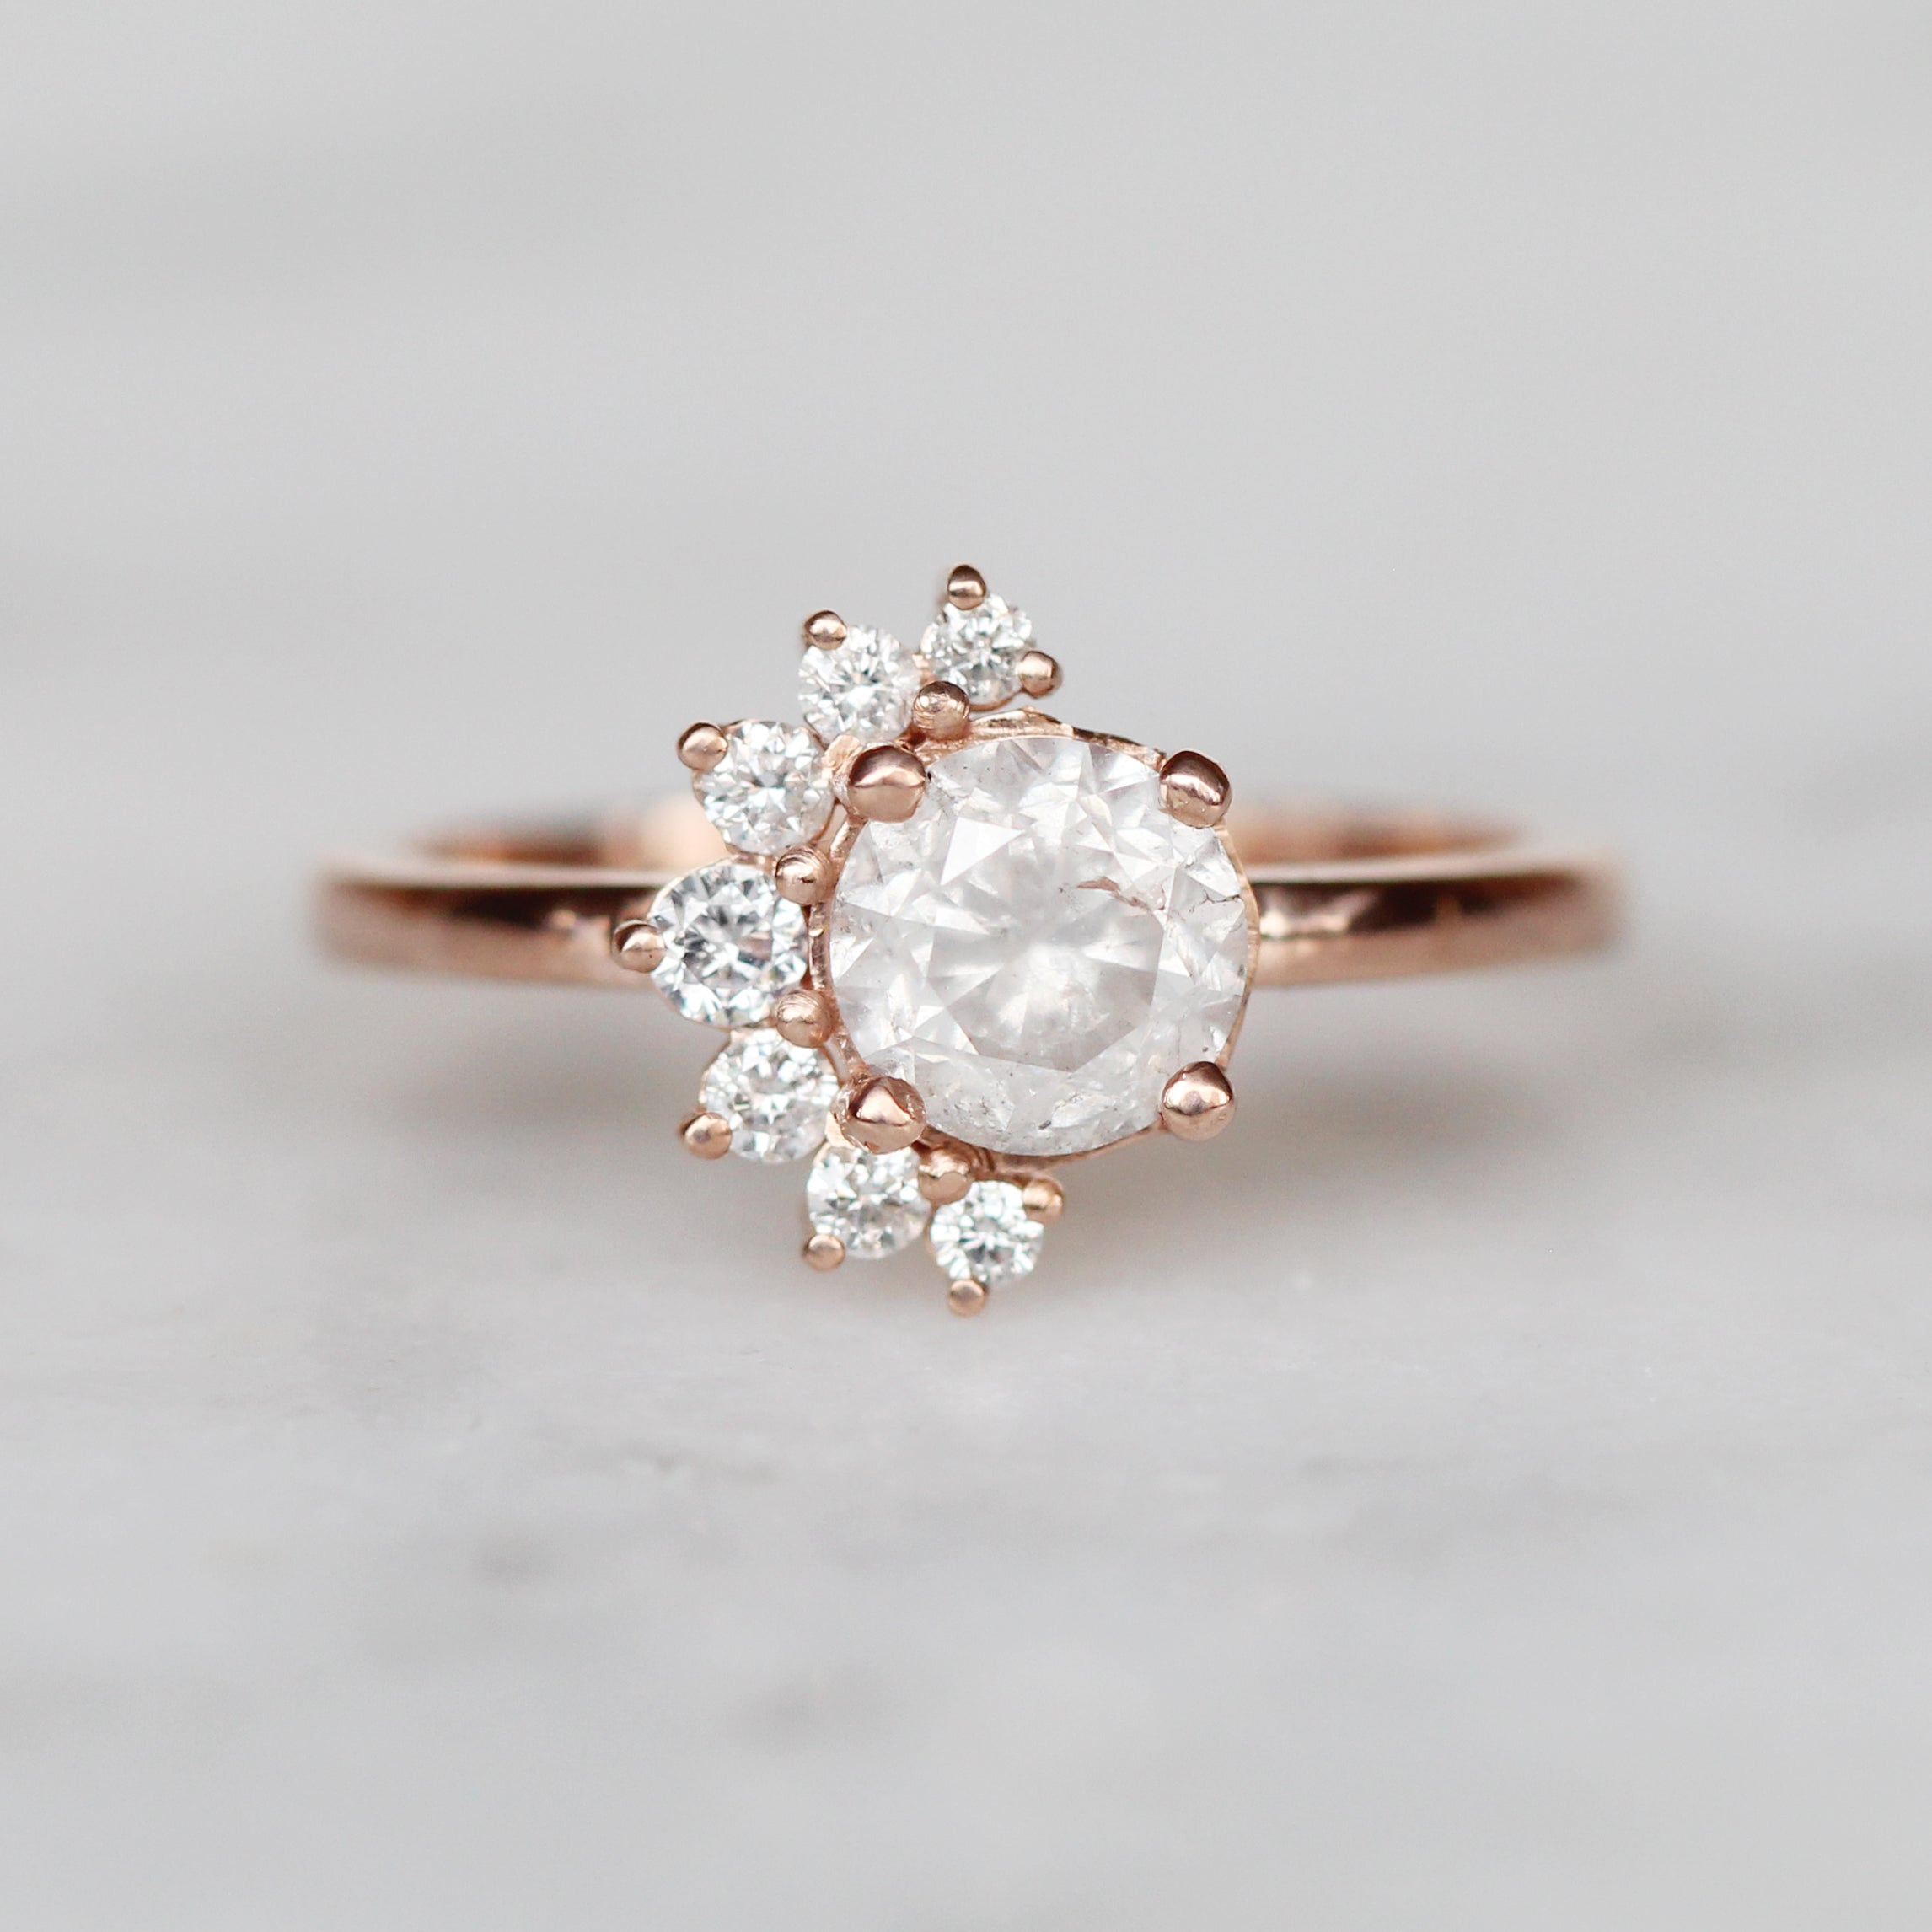 Drew Ring with 1.12 carat misty white diamond and white diamonds in 10k rose gold - ready to size and ship - Celestial Diamonds ® by Midwinter Co.